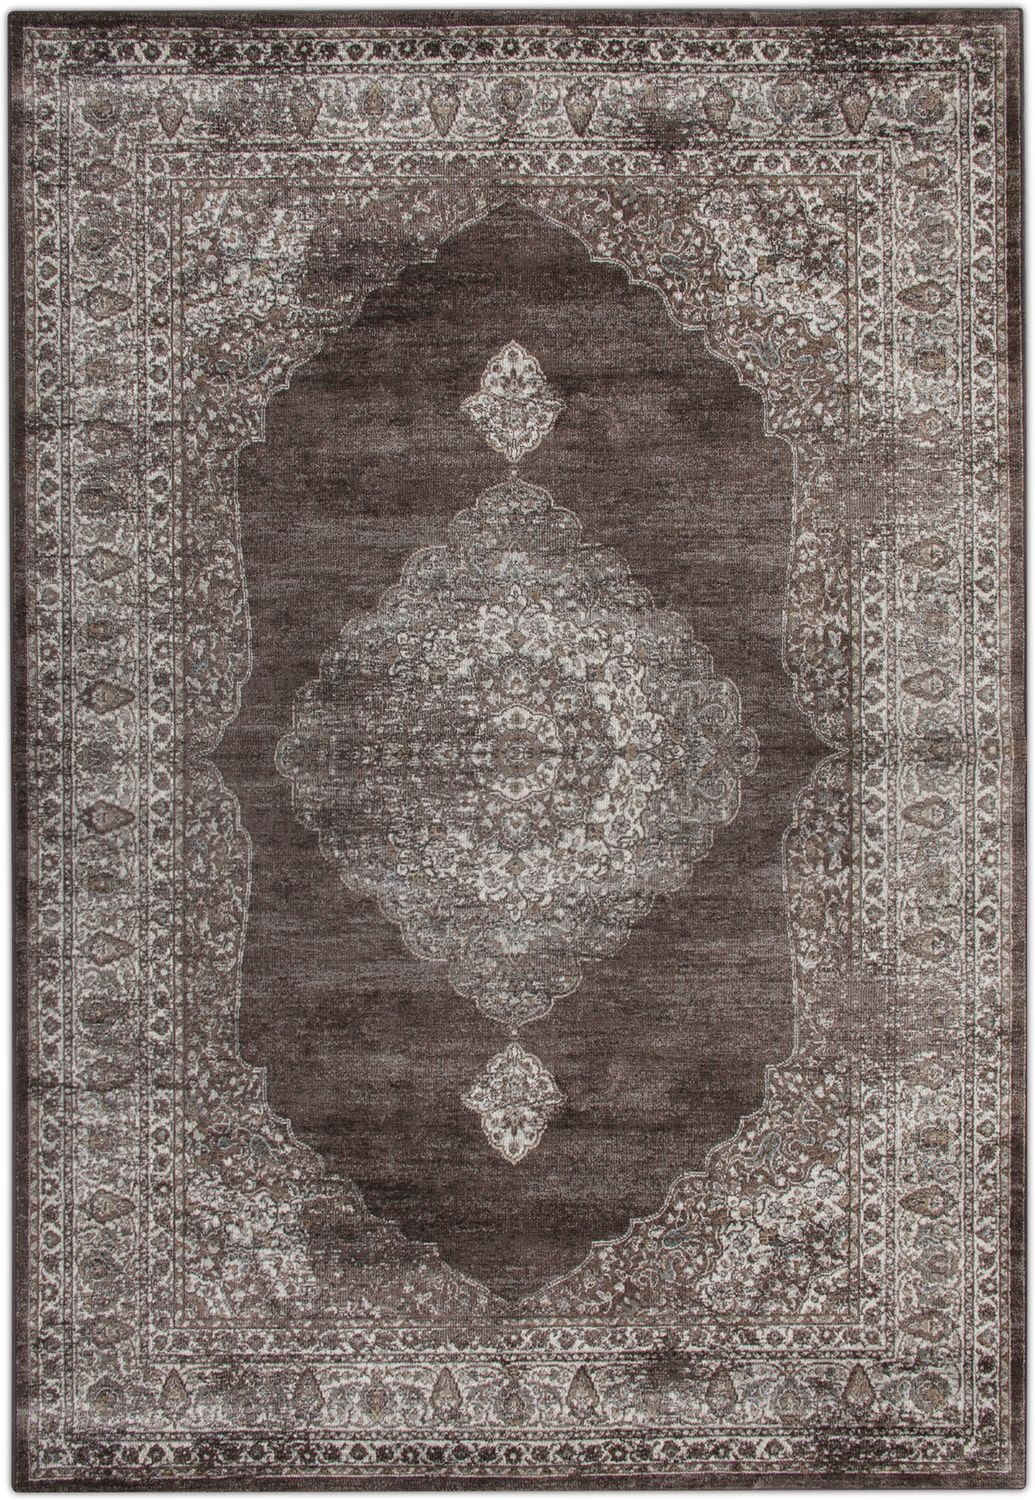 Rugs - Sonoma Area Rug - Ivory and Beige